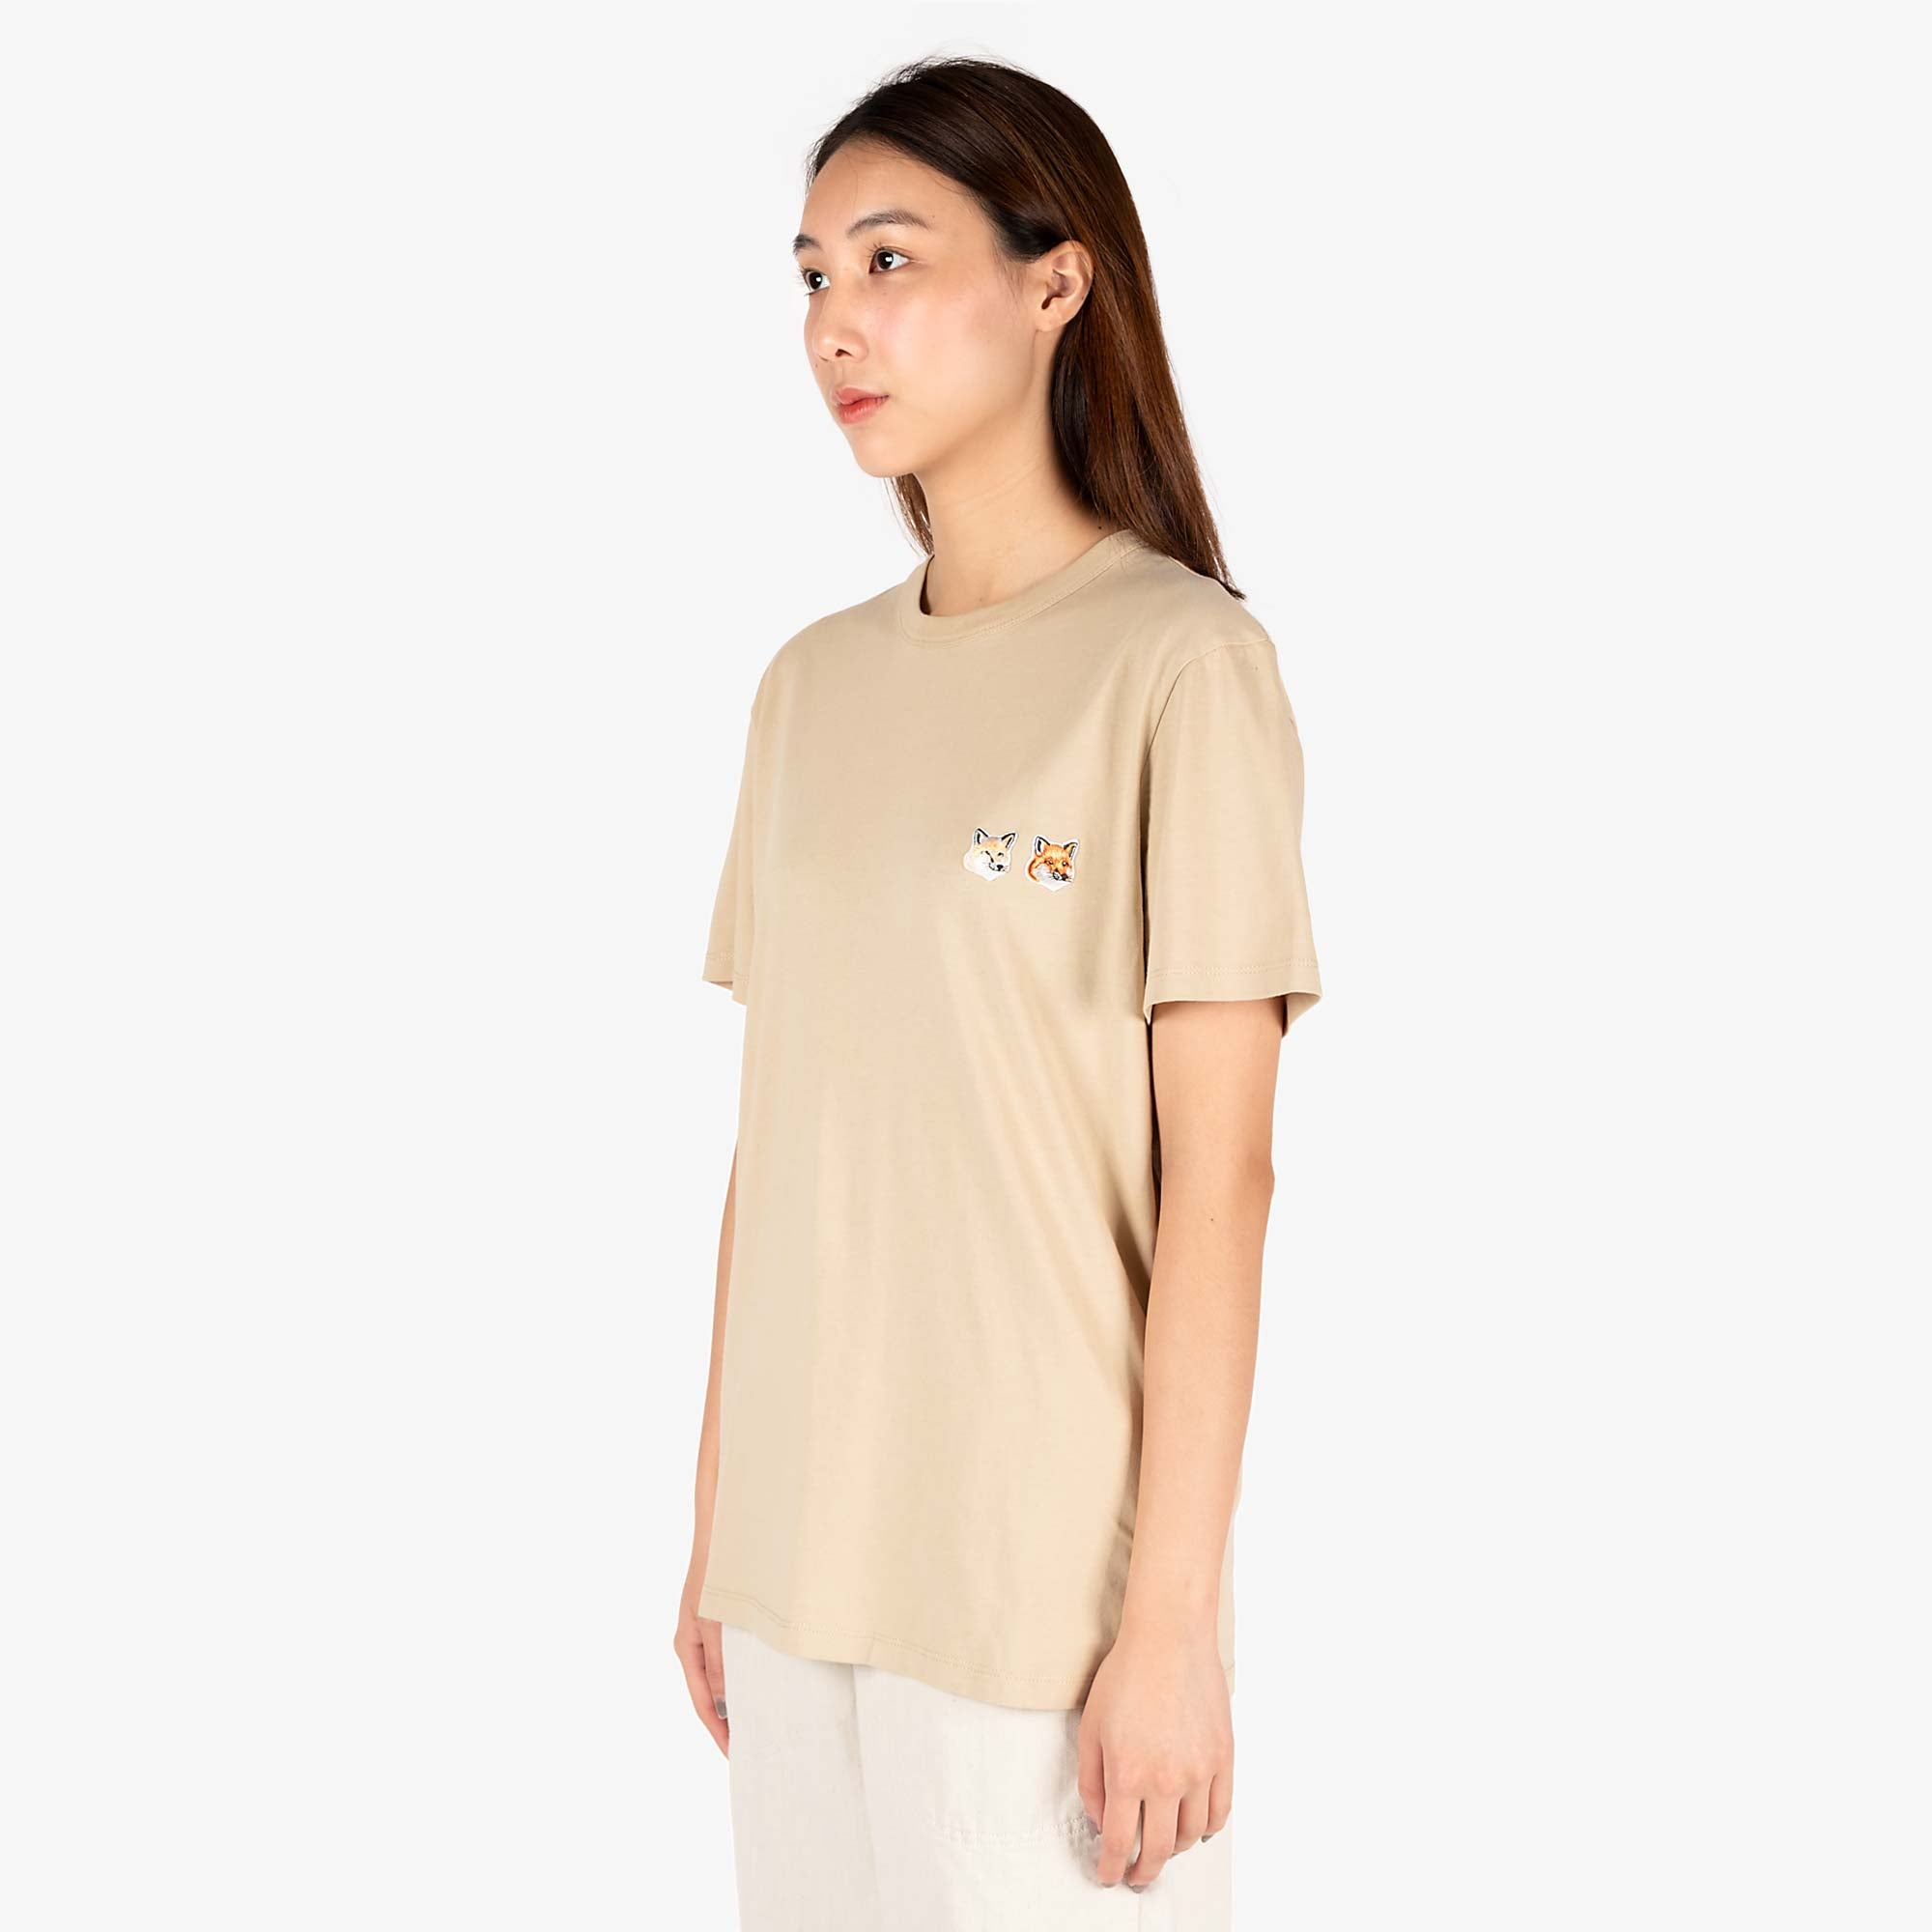 Maison Kitsune Womens Double Fox Head Patch T-Shirt - Beige 4